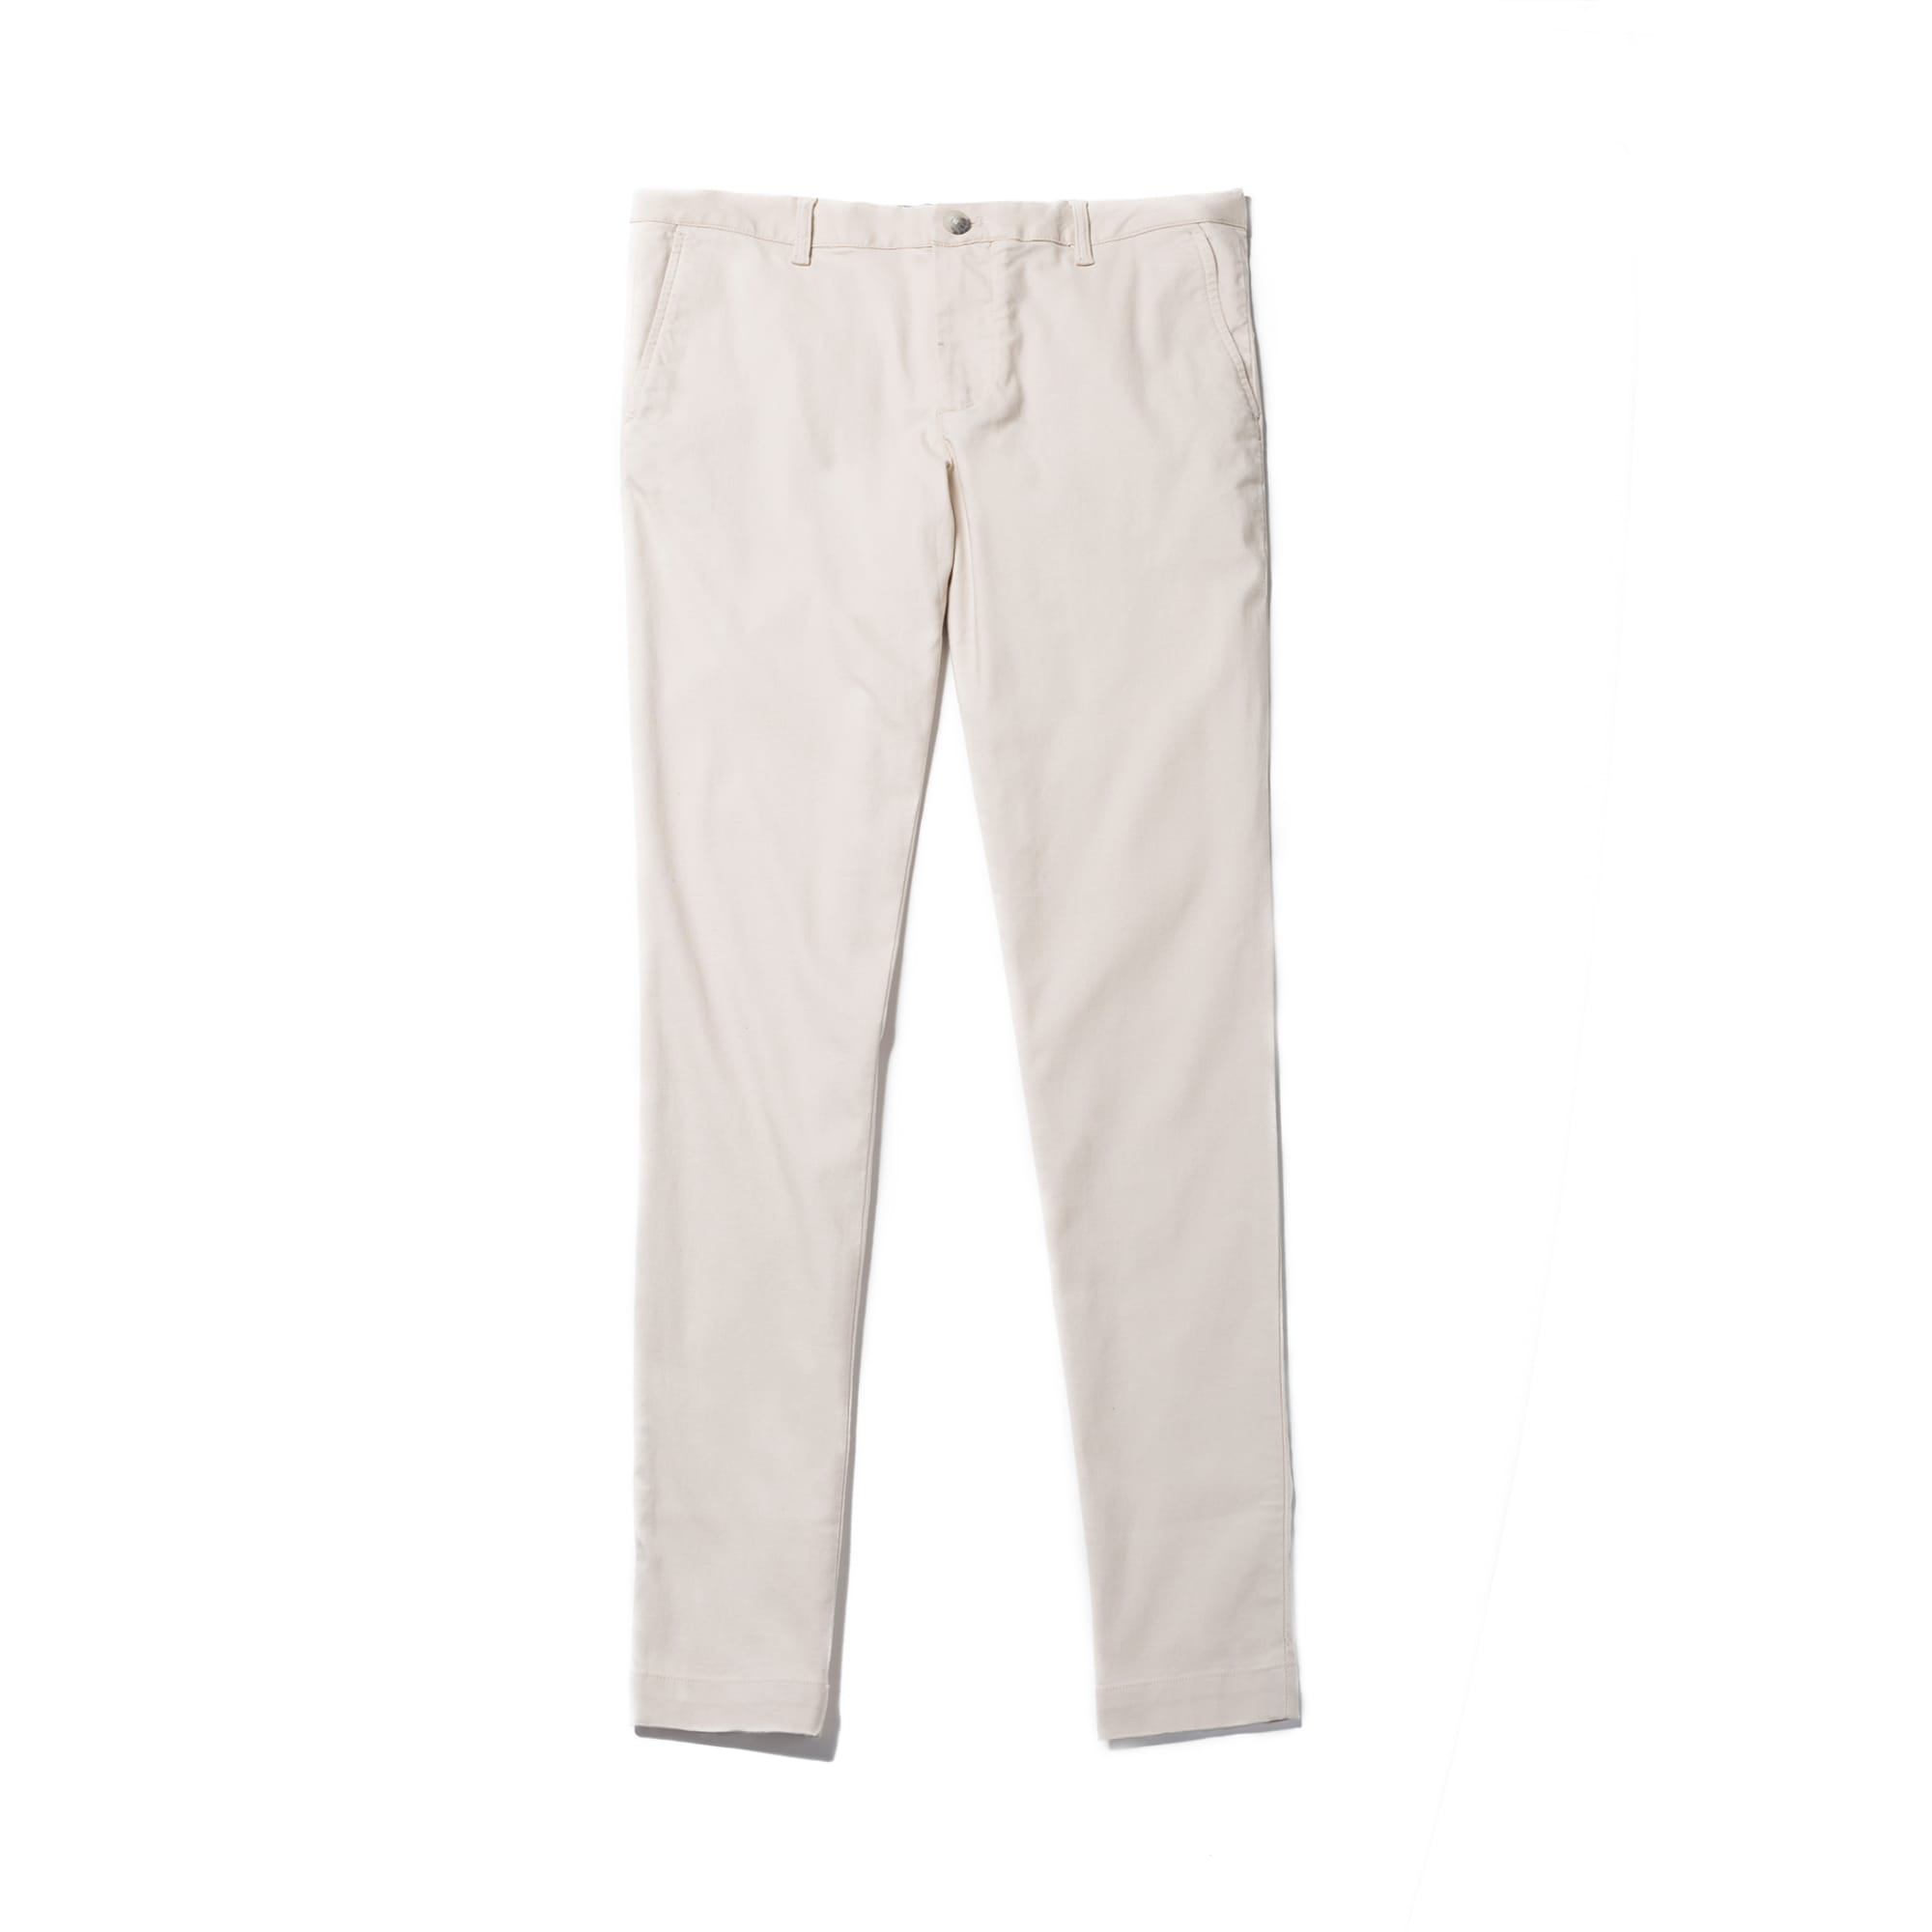 Men's Slim Fit Stretch Cotton Piqué Chino Pants